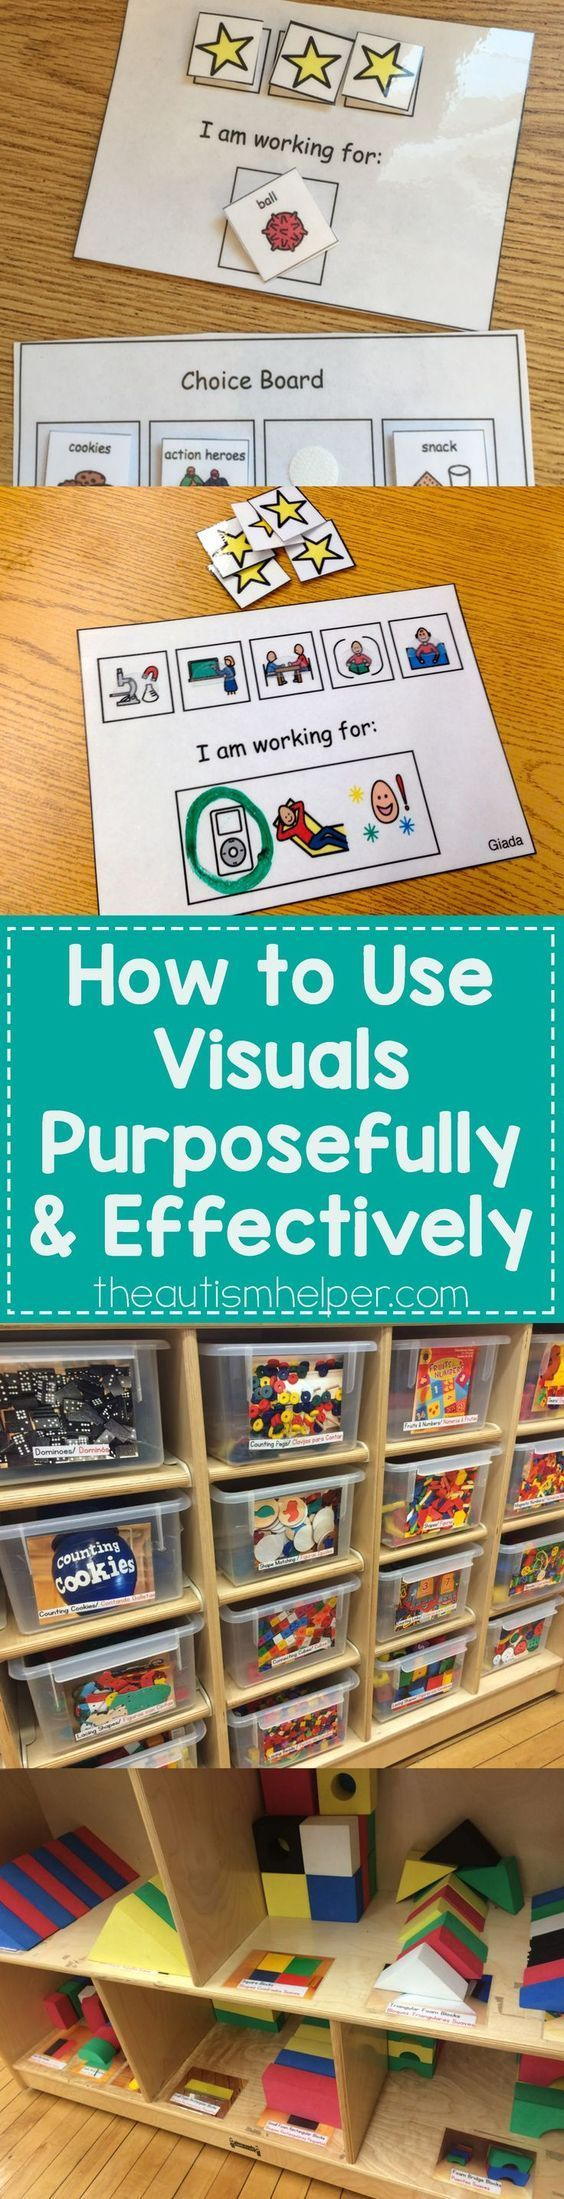 Using Visuals in Special Education and Autism Classrooms.  We all use them, but do we use them effectively? Great information and pictures.  Go to:  http://theautismhelper.com/use-visuals-purposefully-effectively/